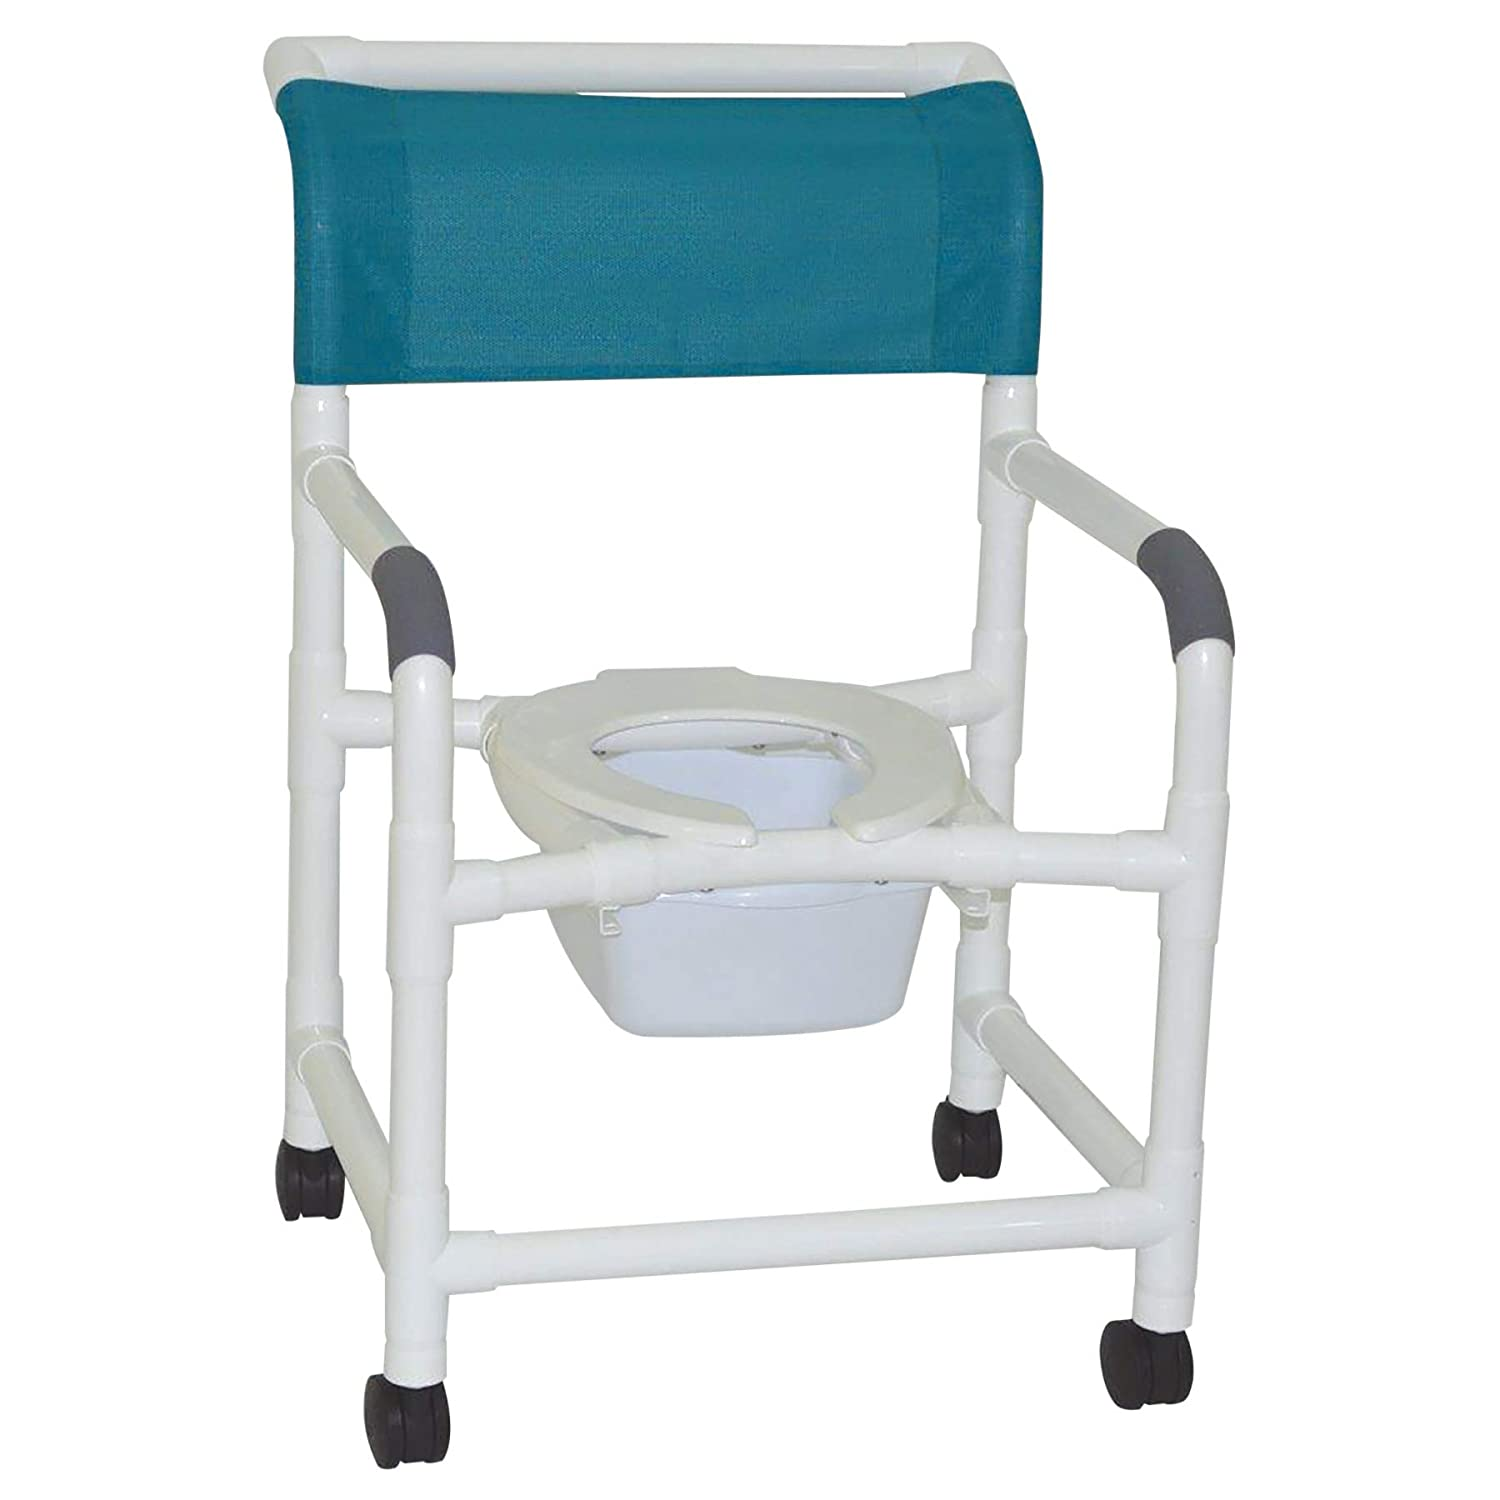 "MJM International 122-3TW-SQ-PAIL Wide Shower Chair with Commode Pail, 375 oz Capacity, 40.5"" Height x 26\"" Width x 27\"" Depth, Royal Blue/Forest Green/Mauve 61QZaxmff2BL._SL1500_"